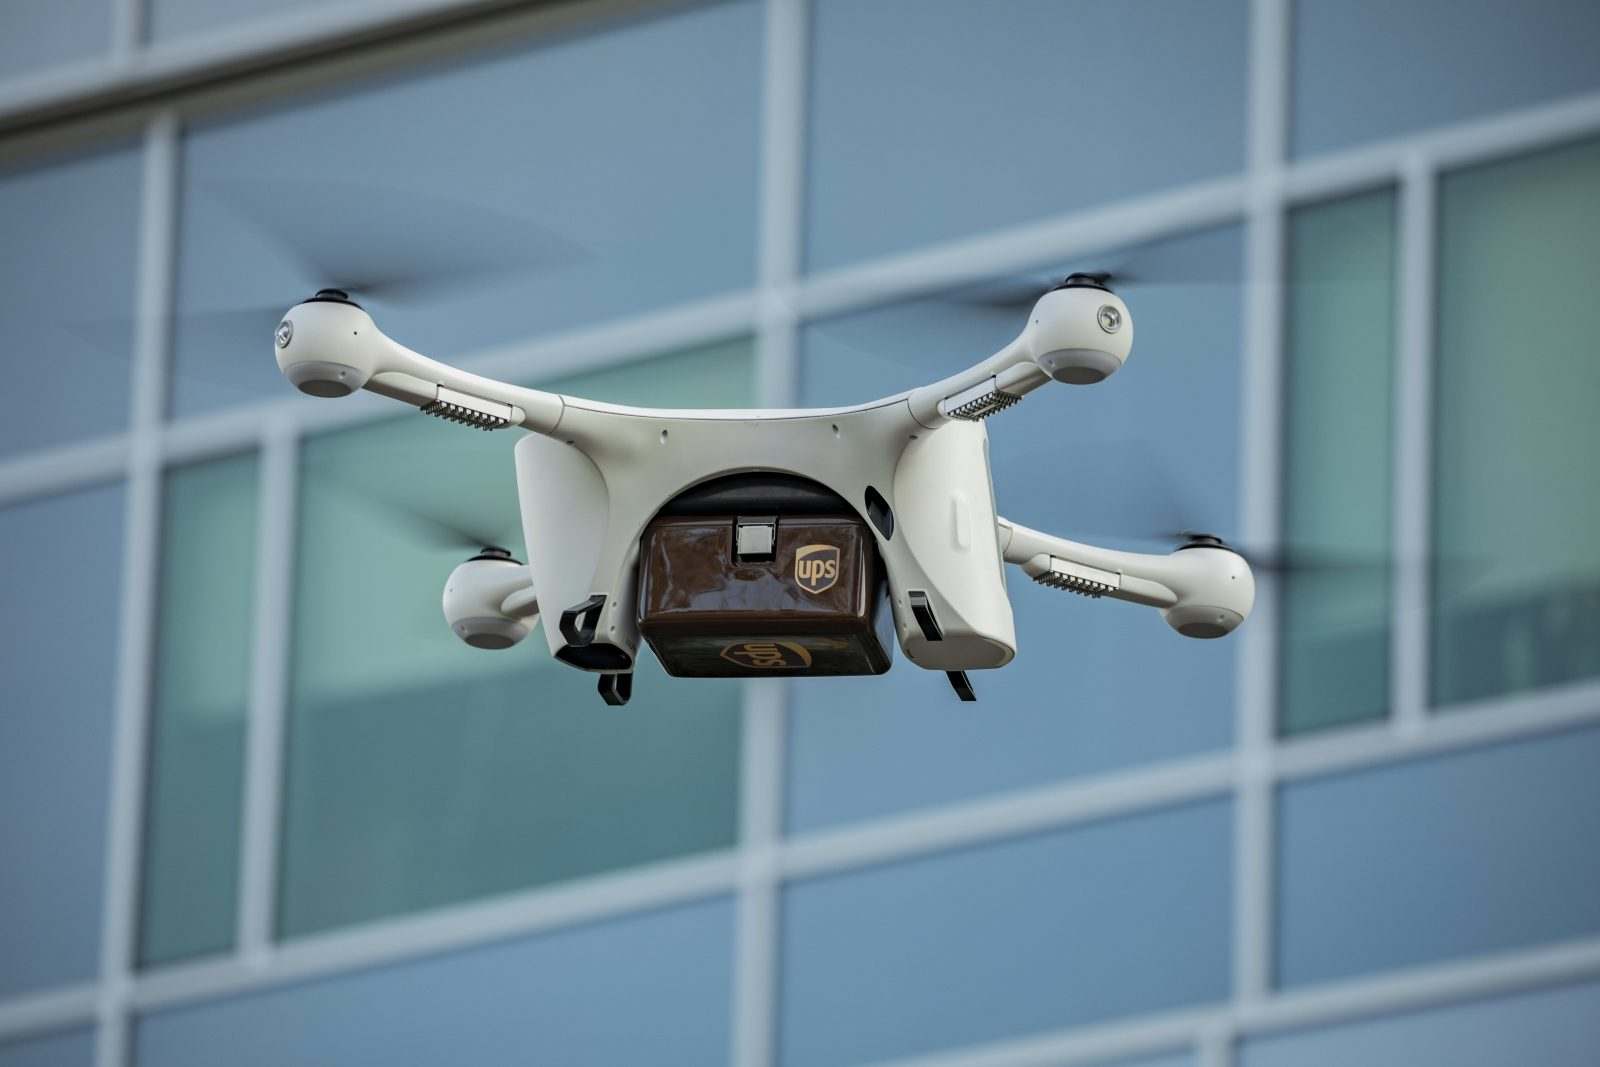 UPS partners with CVS to develop drone delivery service for prescription drugs